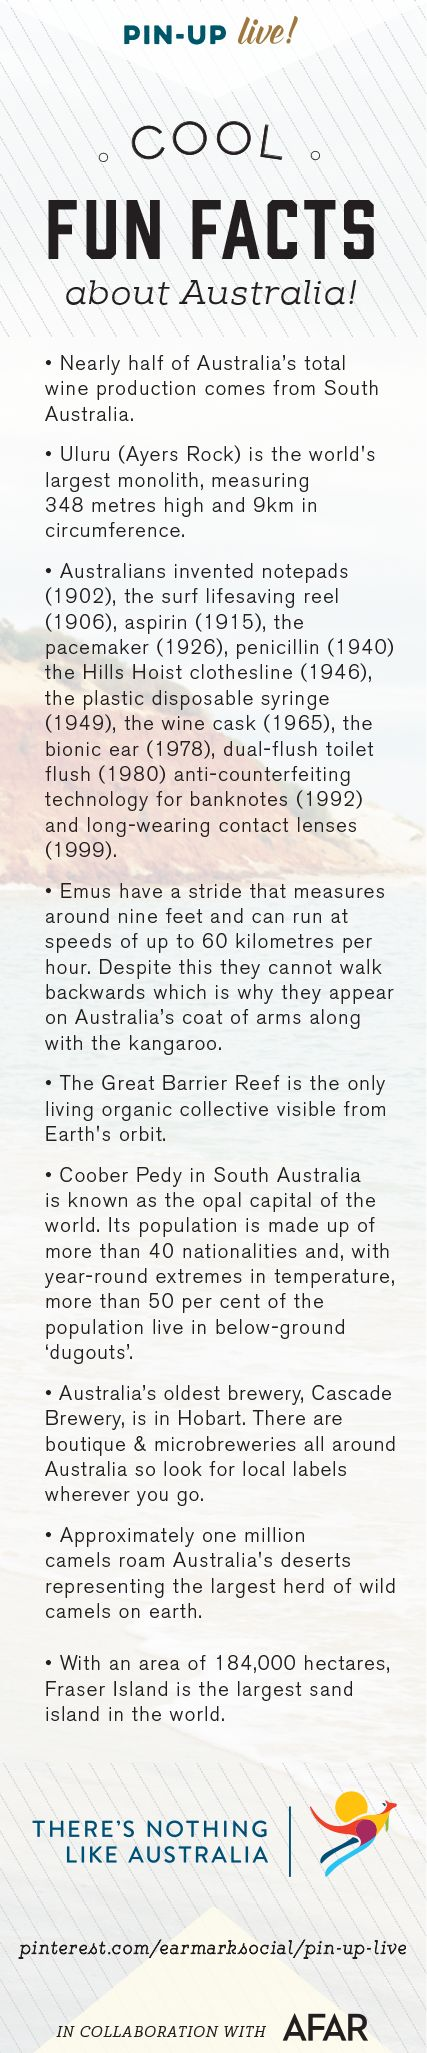 It's always fun to learn some quirky facts while traveling! Do you have a fun fact to share about Australia? Share away! #pinuplive